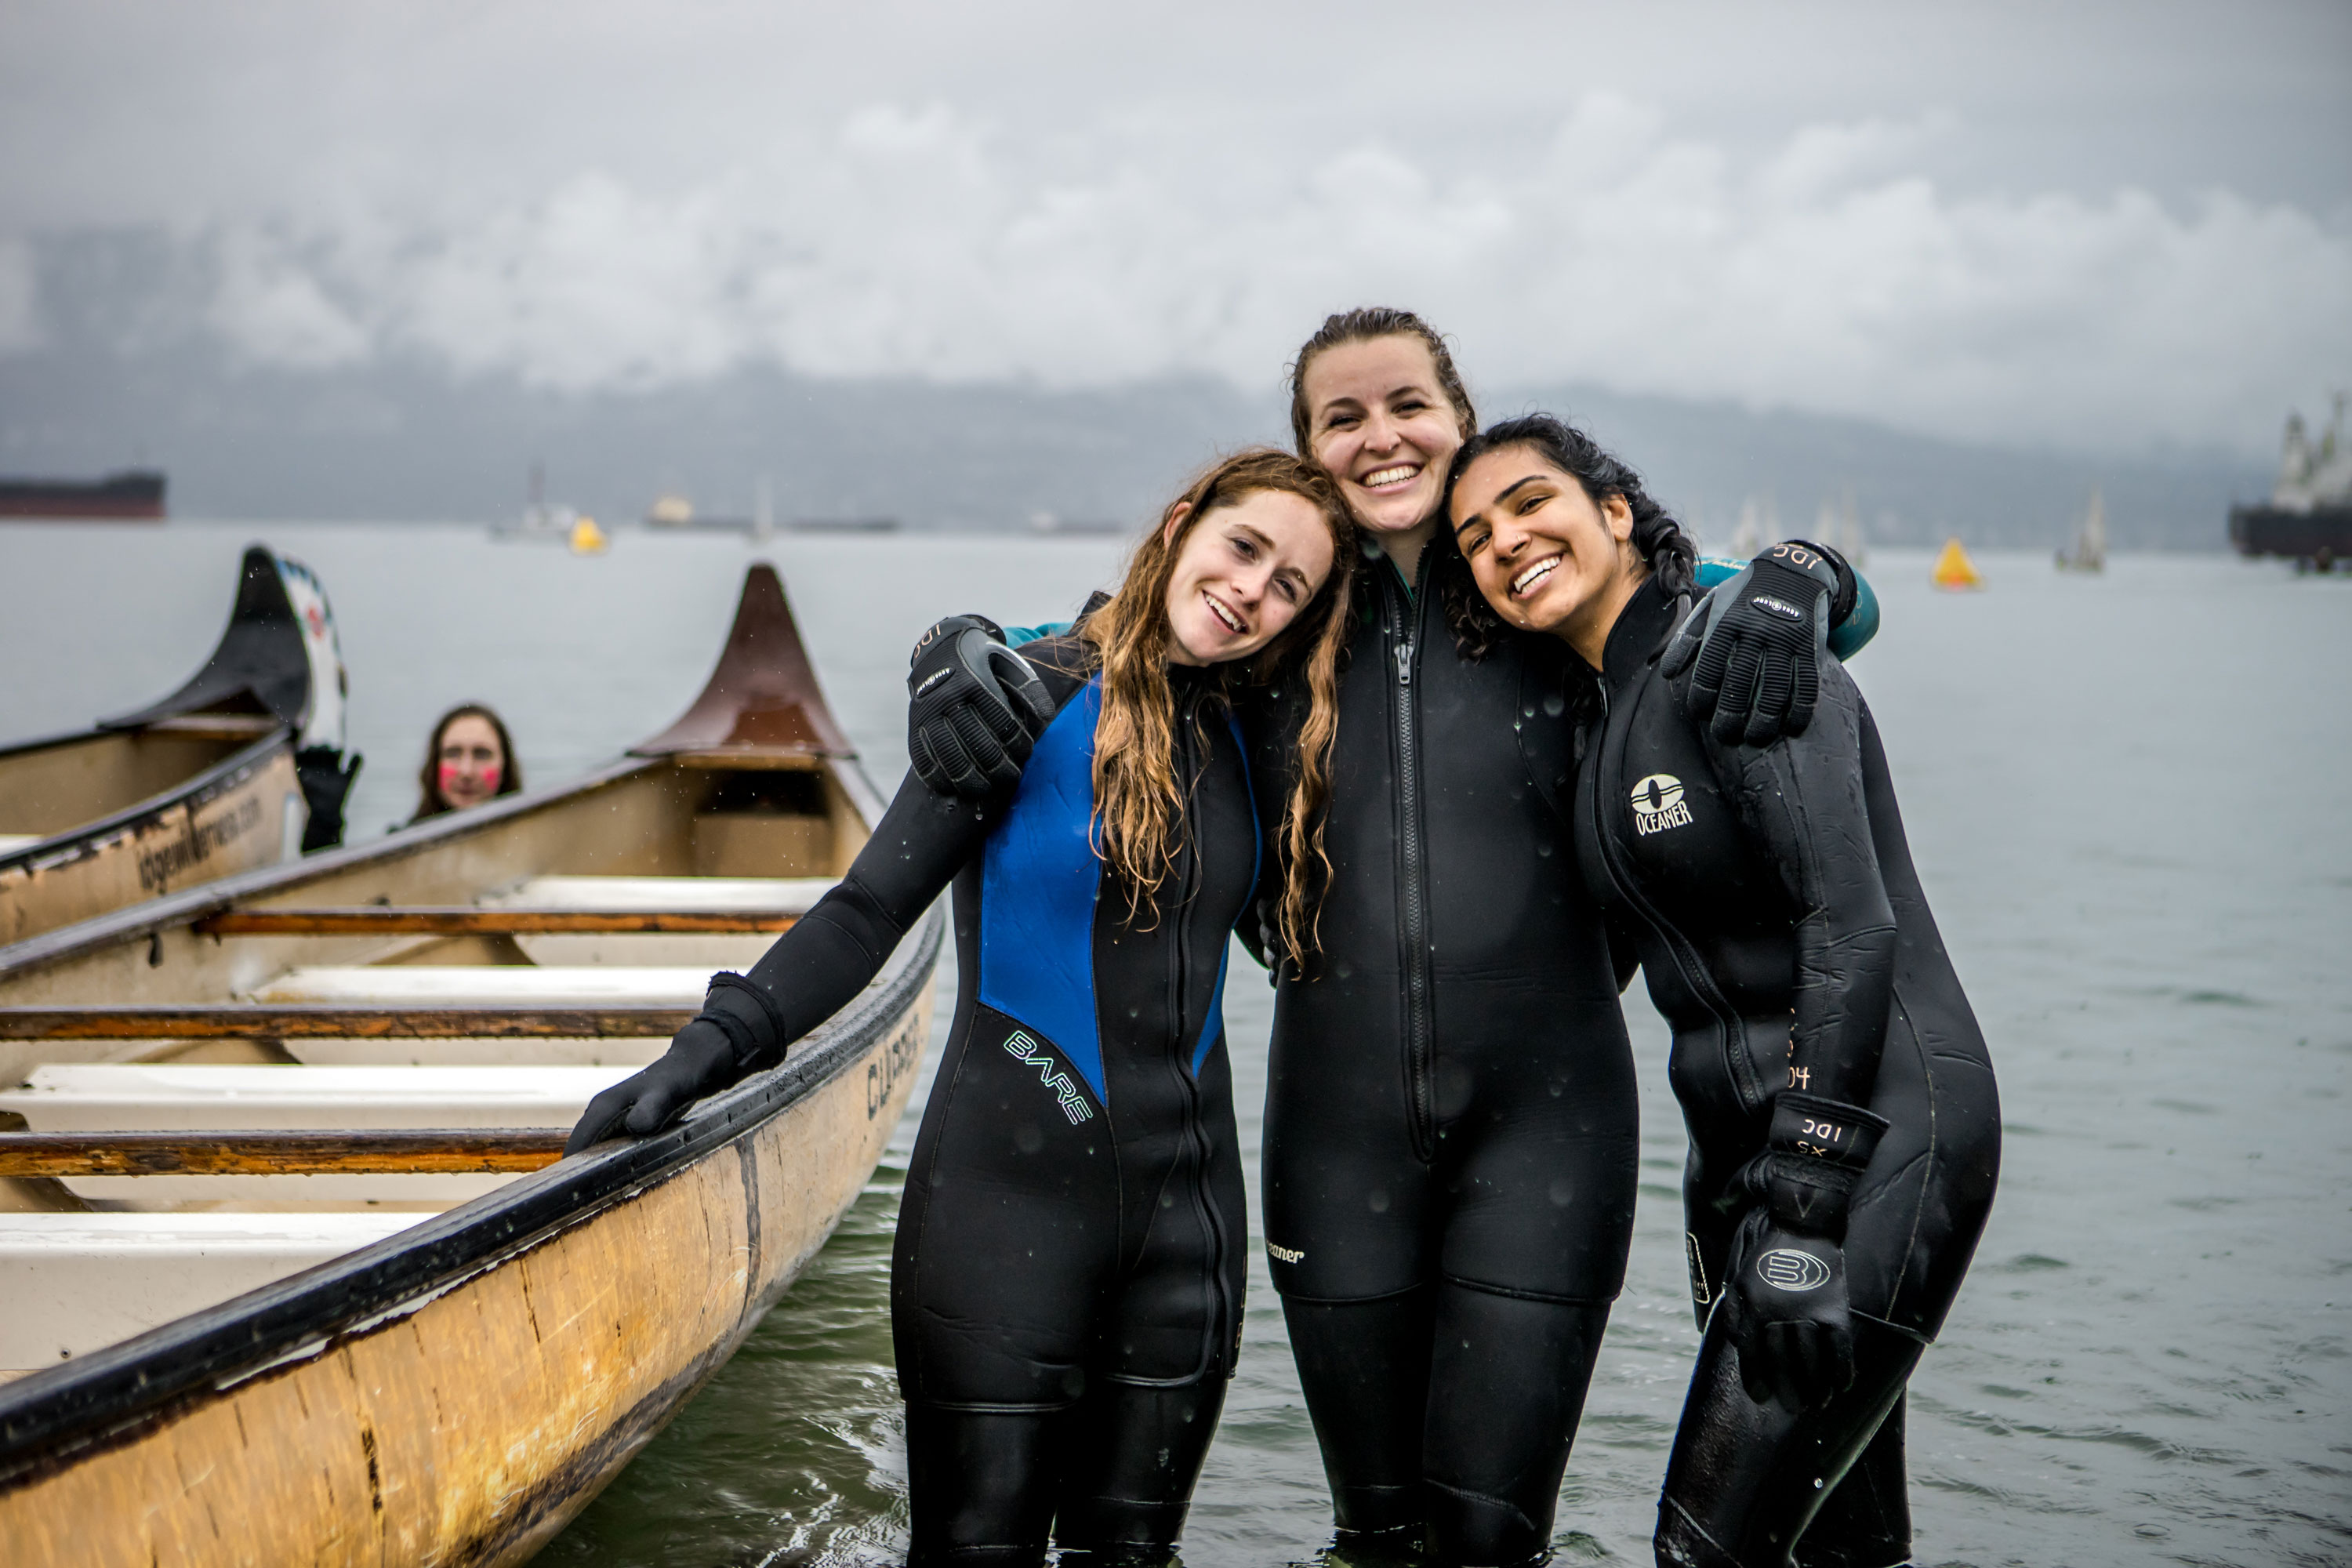 Three participants smiling while standing in water at Day of the Longboat.